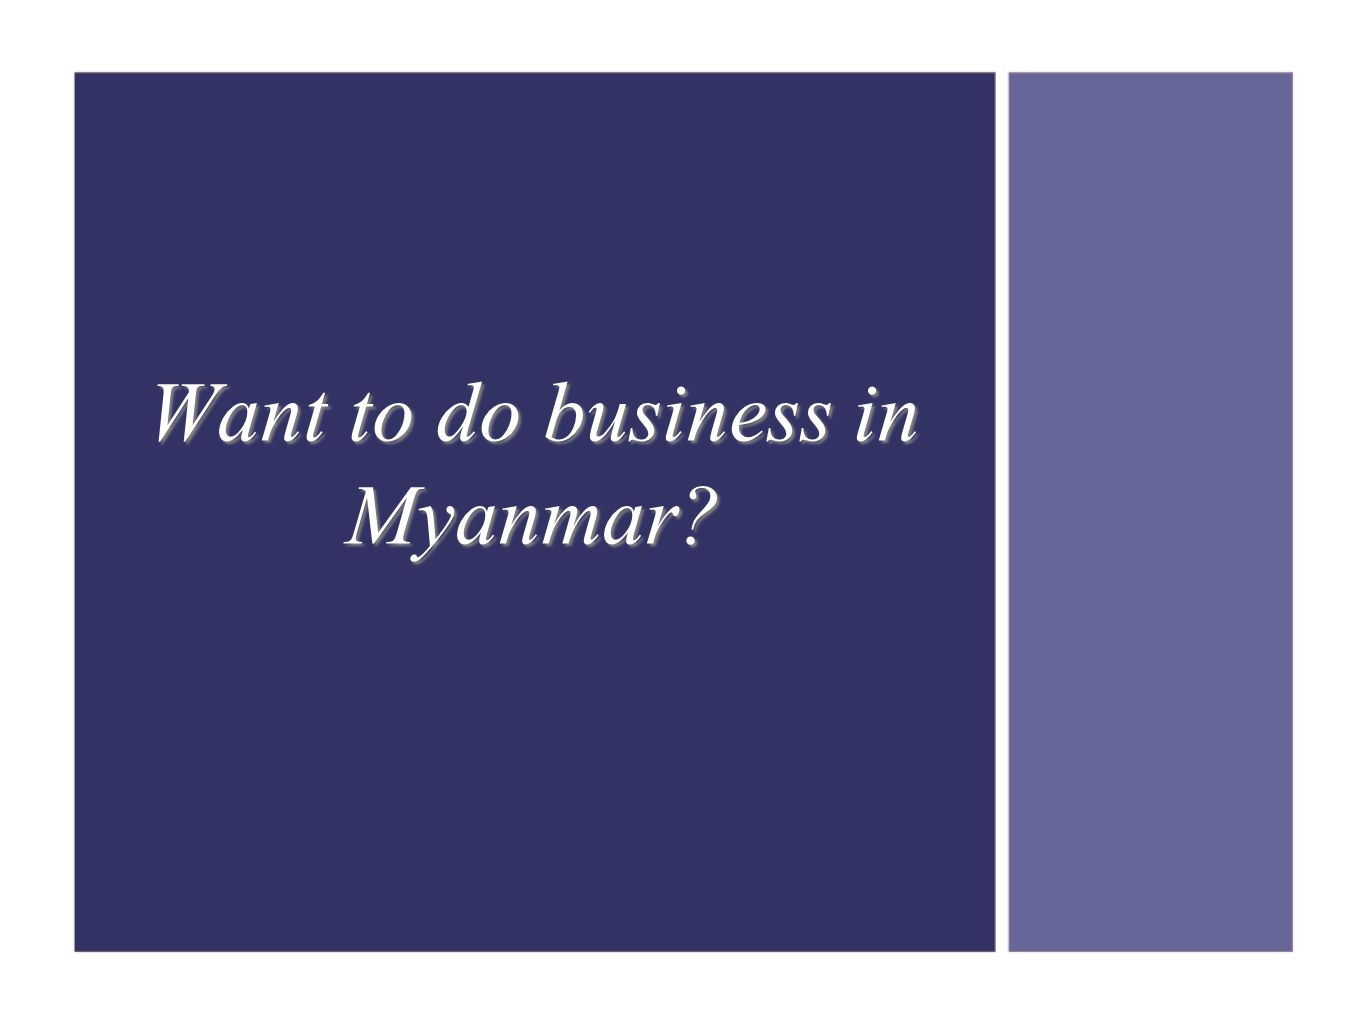 Want to do business in Myanmar